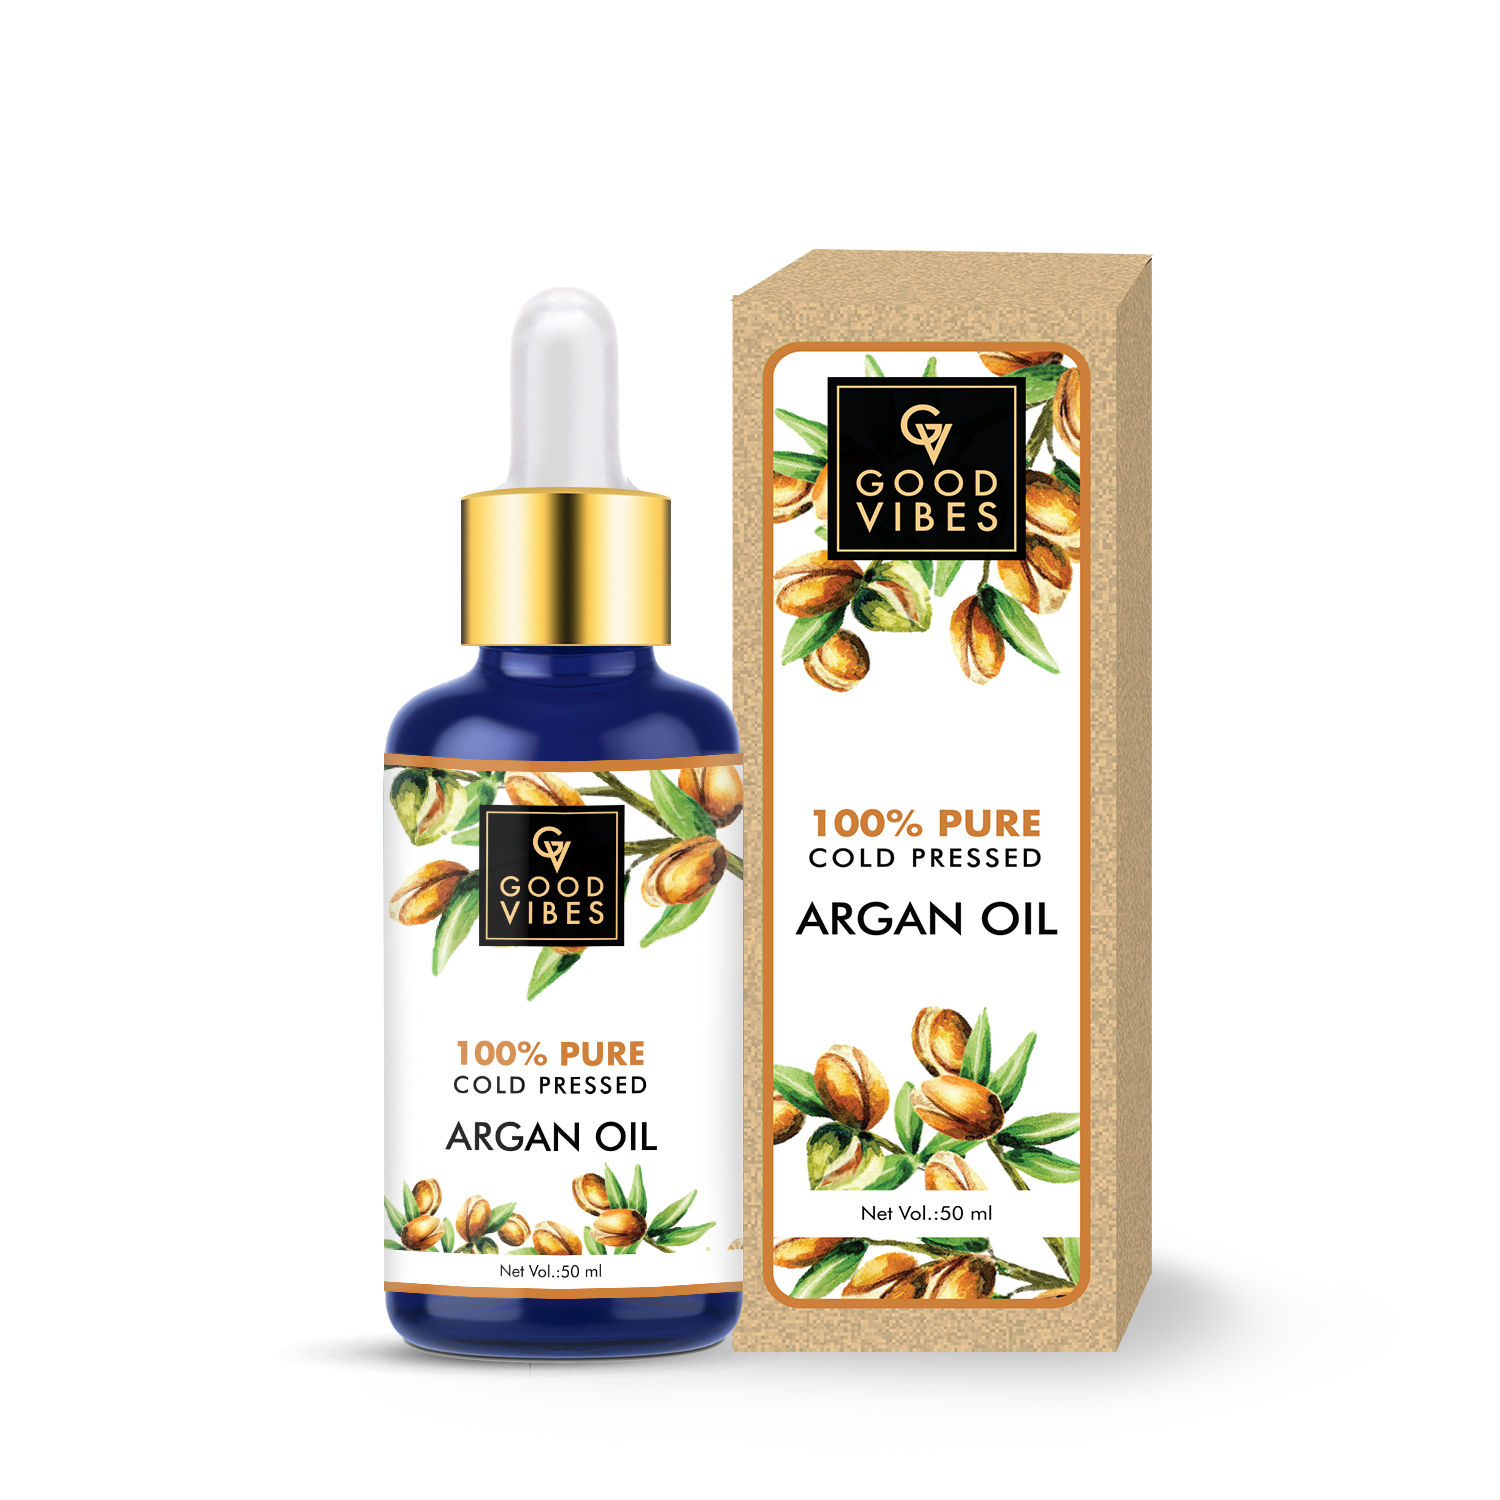 Good Vibes | Good Vibes 100% Pure Cold Pressed Carrier Oil For Hair & Skin - Argan (50 ml)